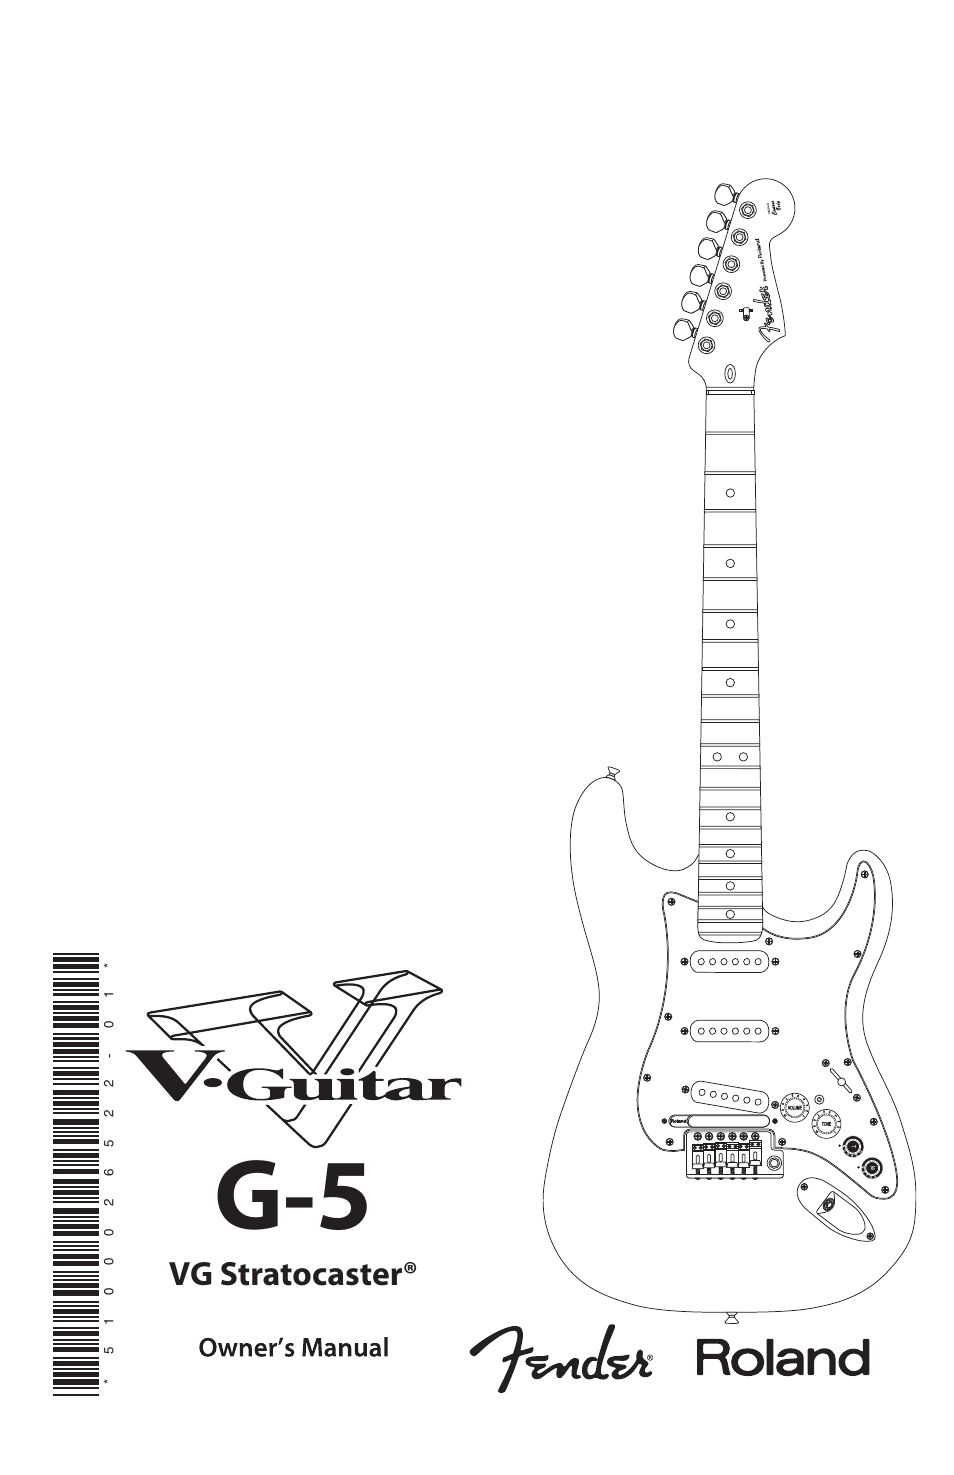 Fender Vg Strat Wiring Diagram Start Building A American Deluxe Roland G 5 Stratocaster User Manual 18 Pages Rh Manualsdir Com Way Switch